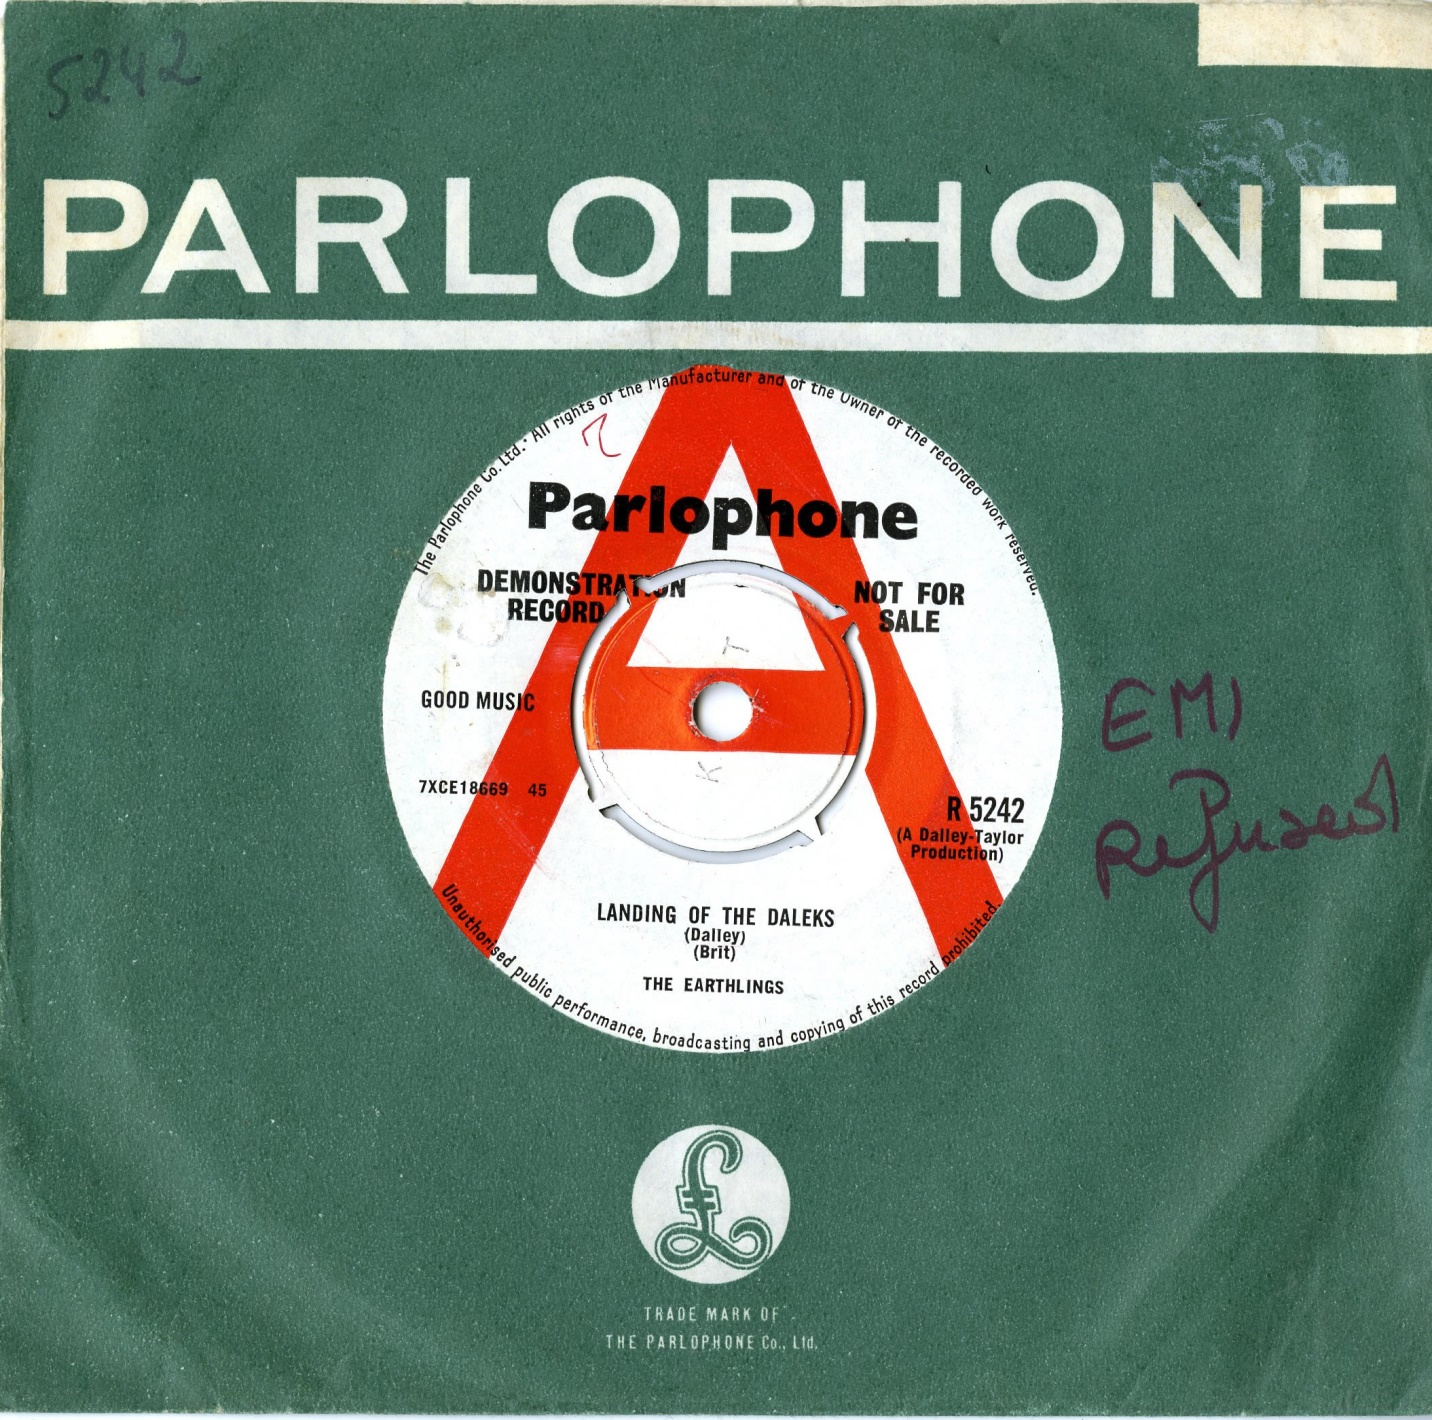 The Parlophone Company Ltd., The Earthlings, The Landing of the Daleks (demonstration record)